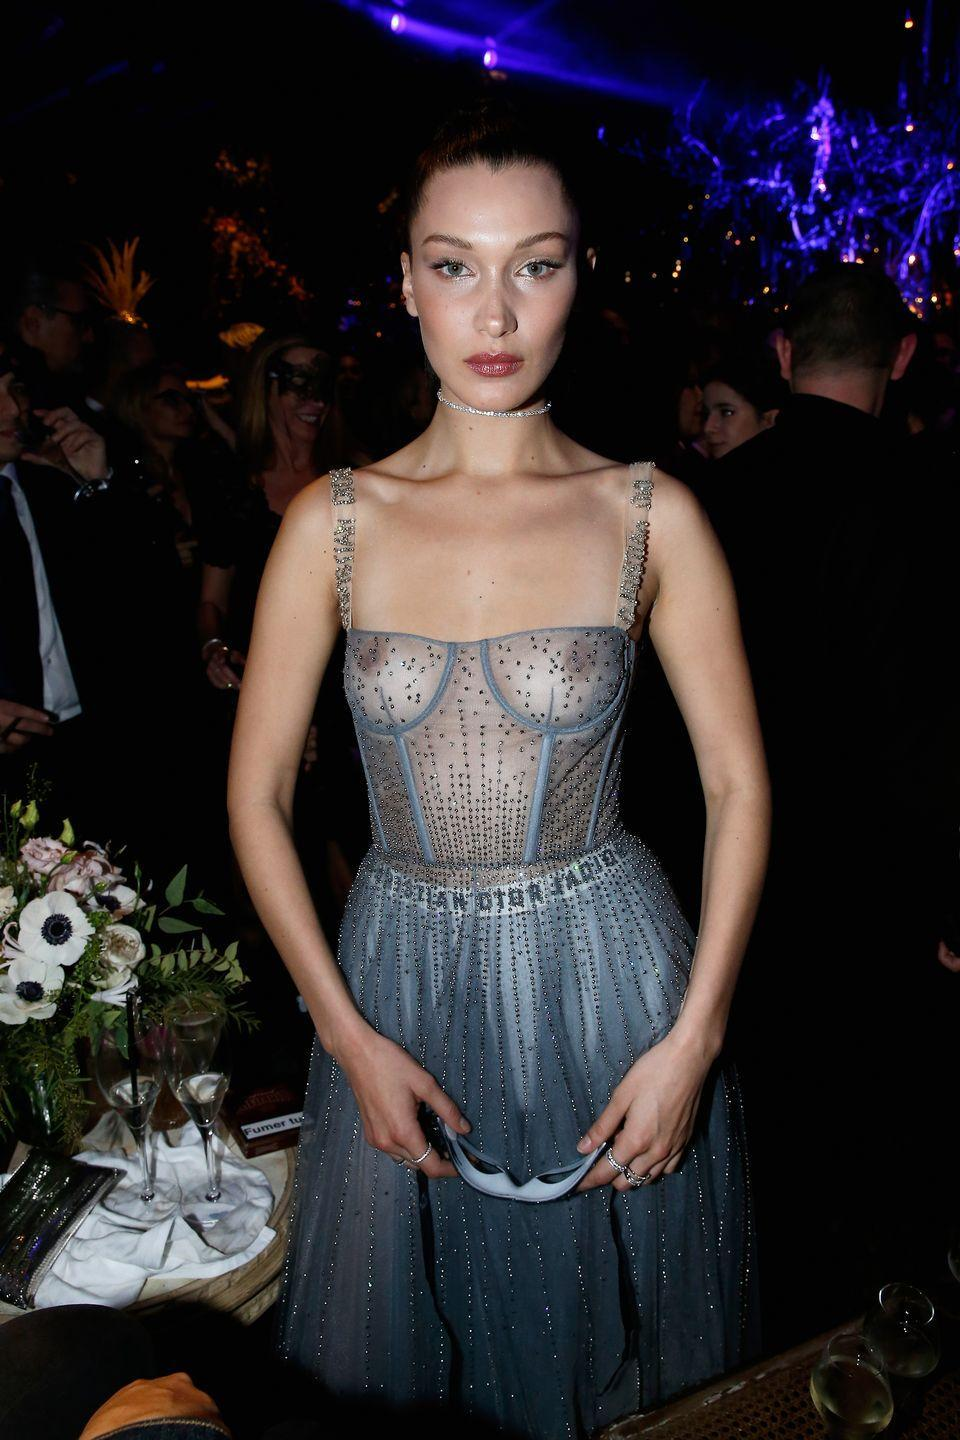 <p>The model wore a sheer dress for the Christian Dior Bal Masque, January 2017</p>